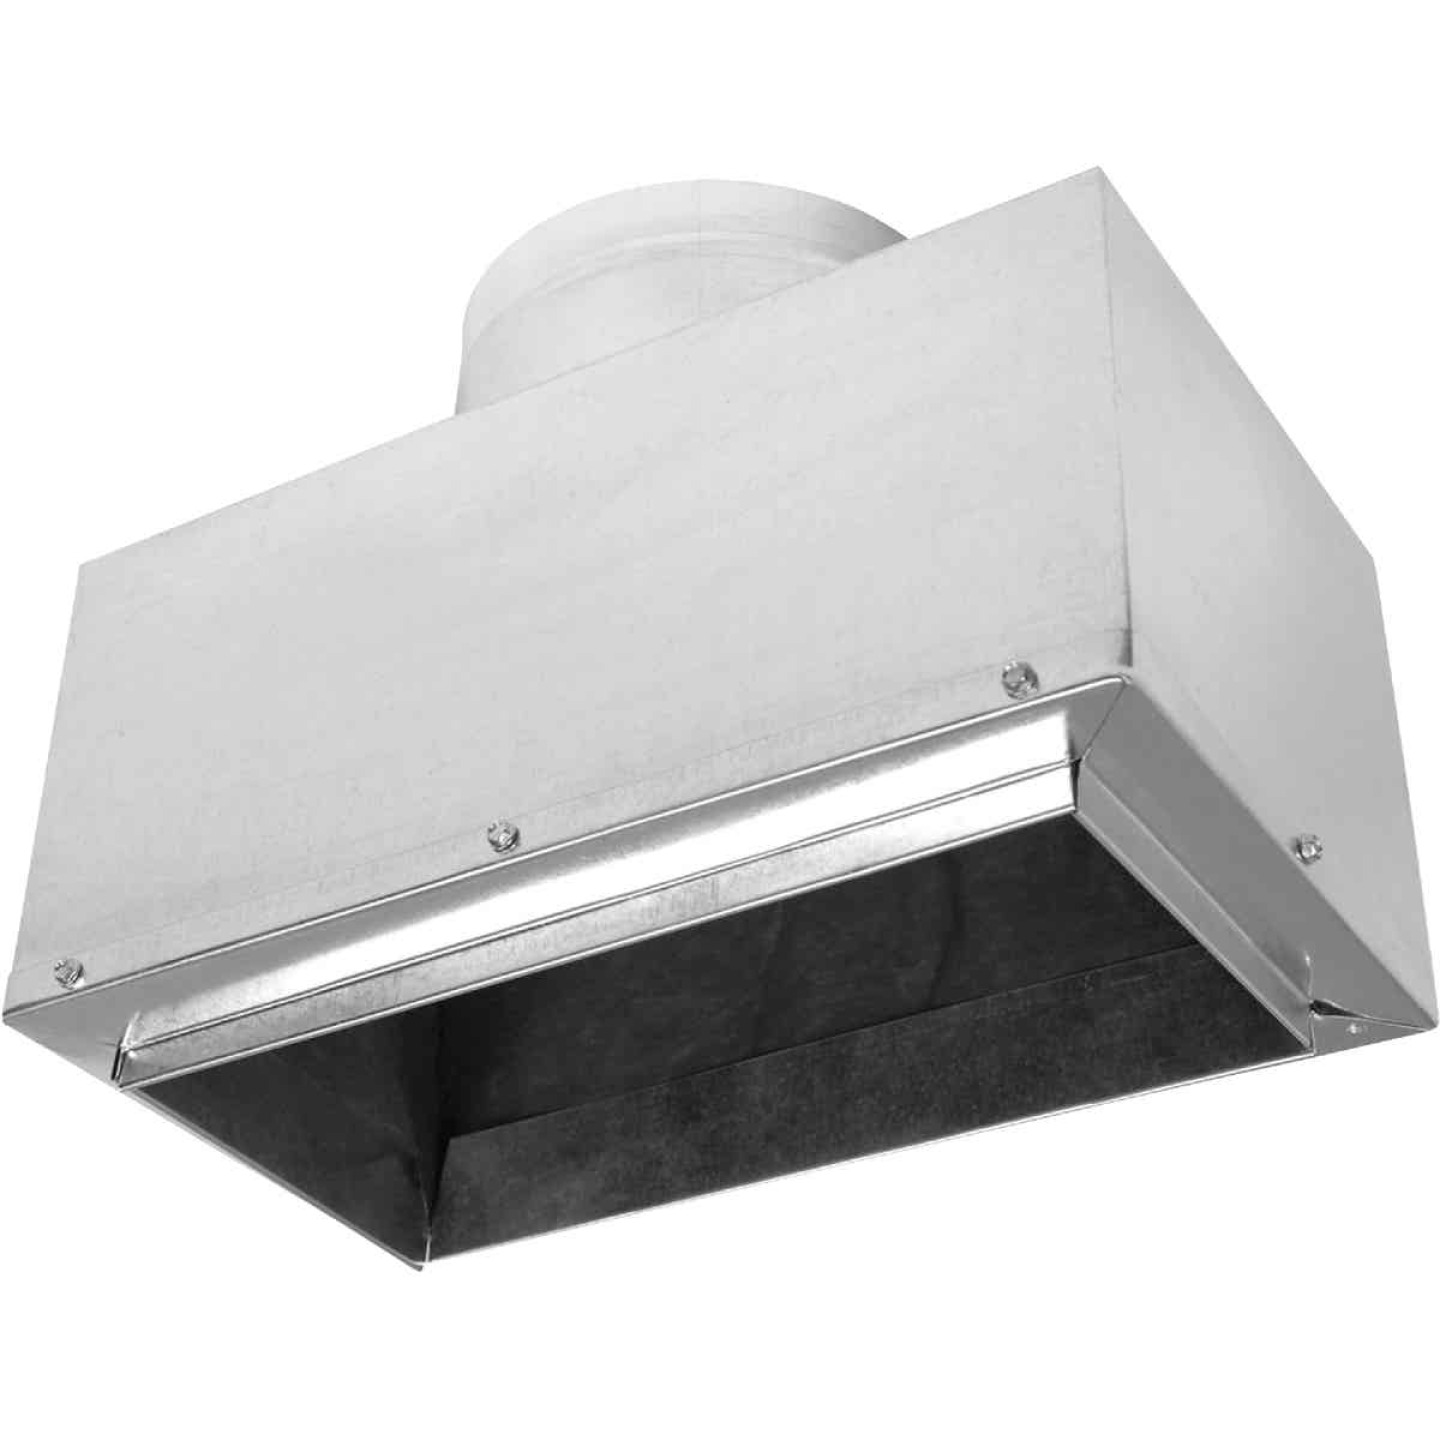 Imperial 10 In. x 6 In. x 6 In. Insulated Register Boot Image 1